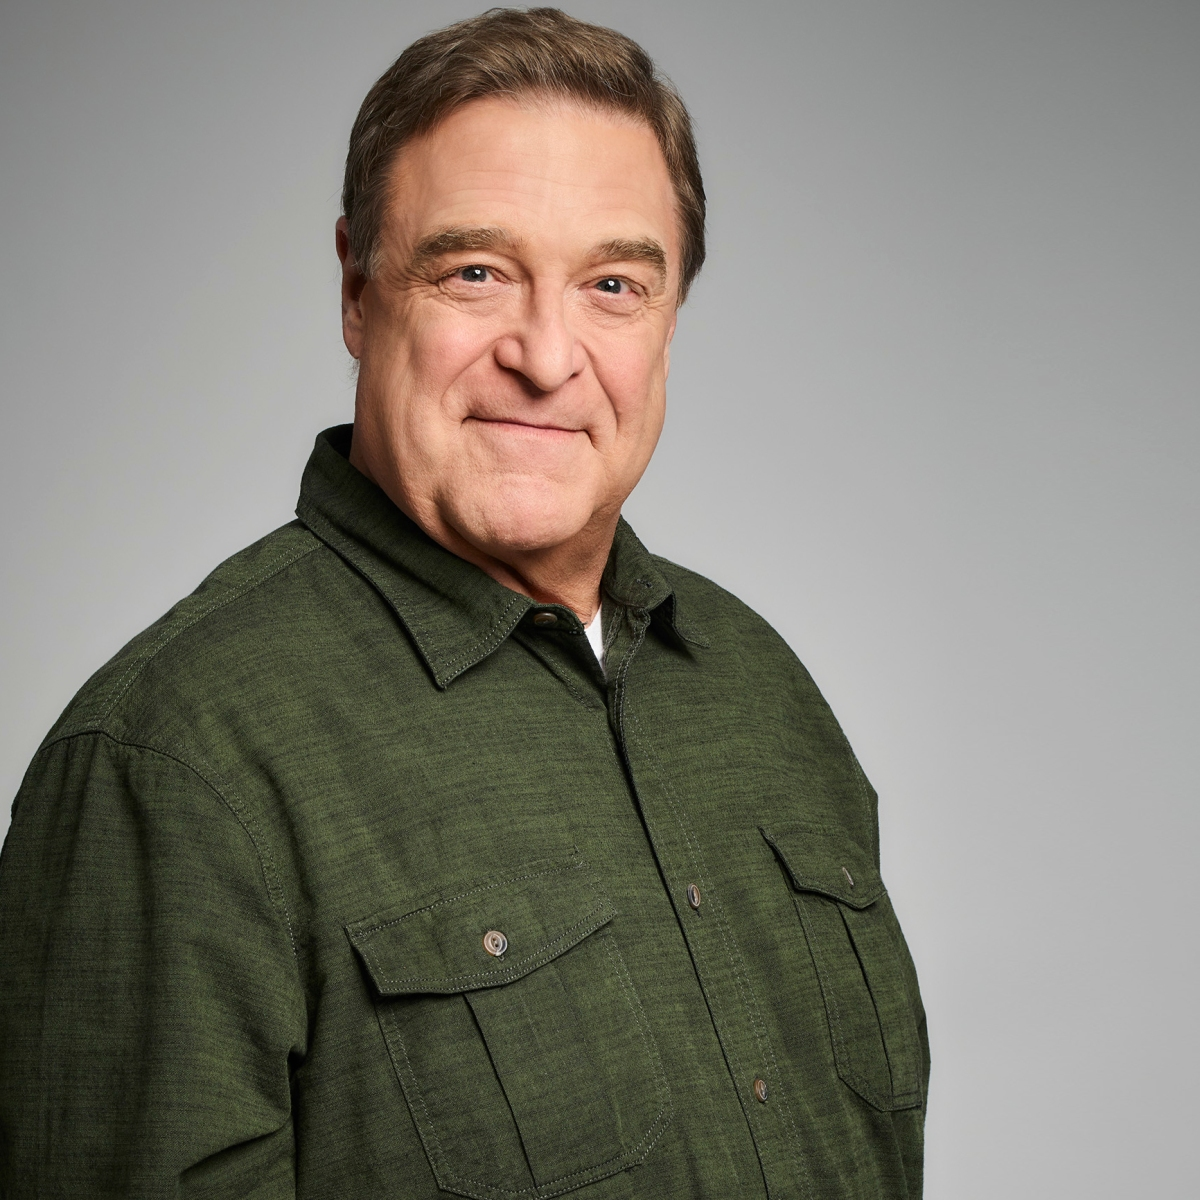 Q&A: John Goodman on the \'Roseanne\' Reboot and What He\'s Learned